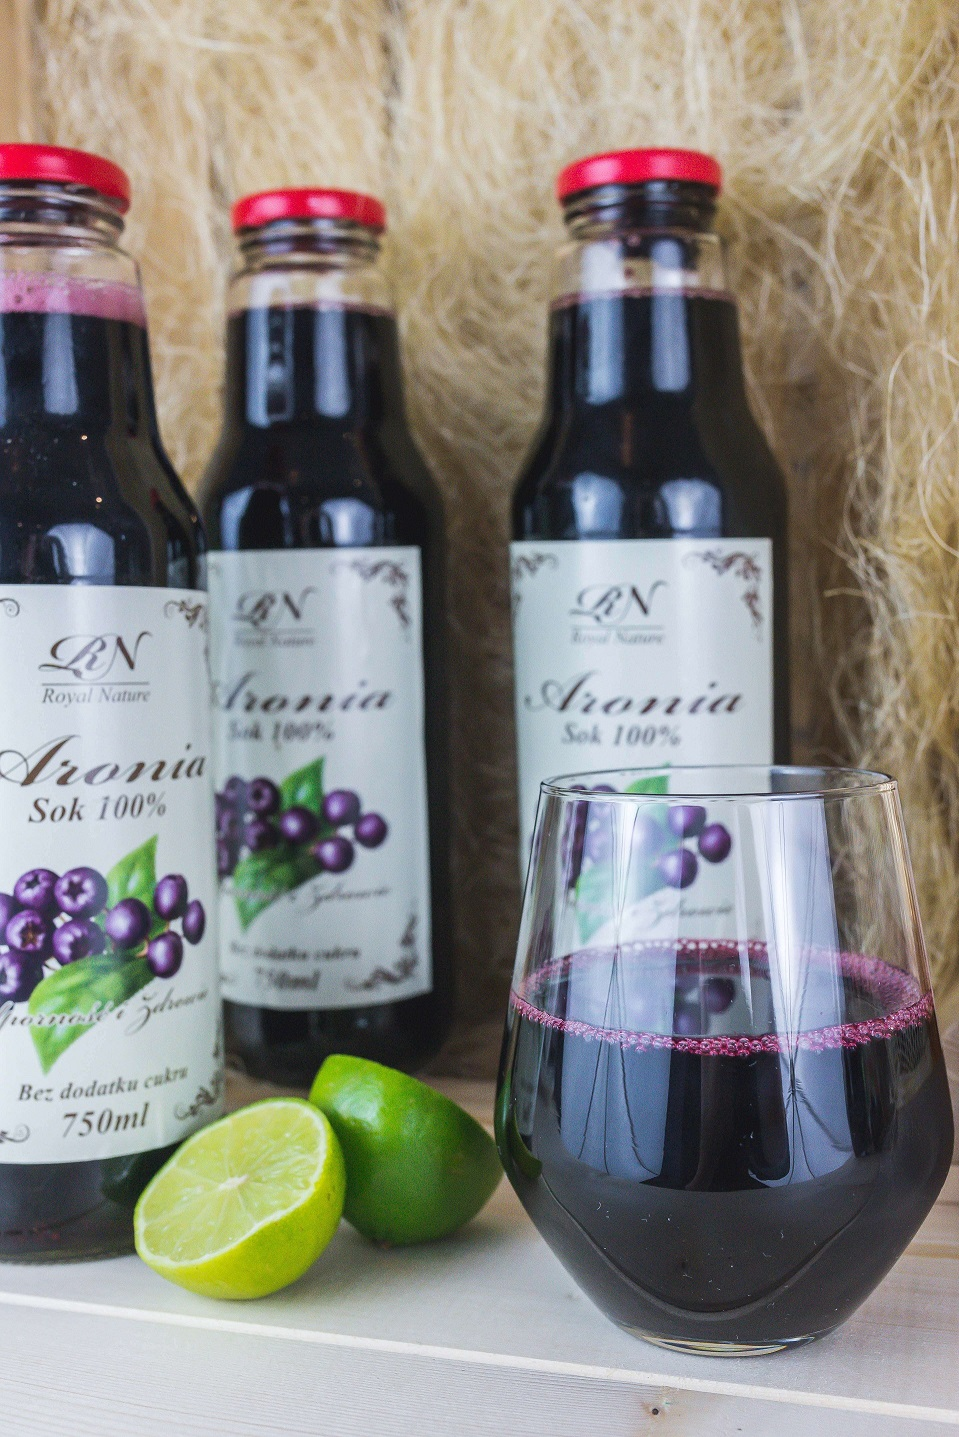 Aronia Nature 3 1 - Royal Nature and the chokeberry elixir of life